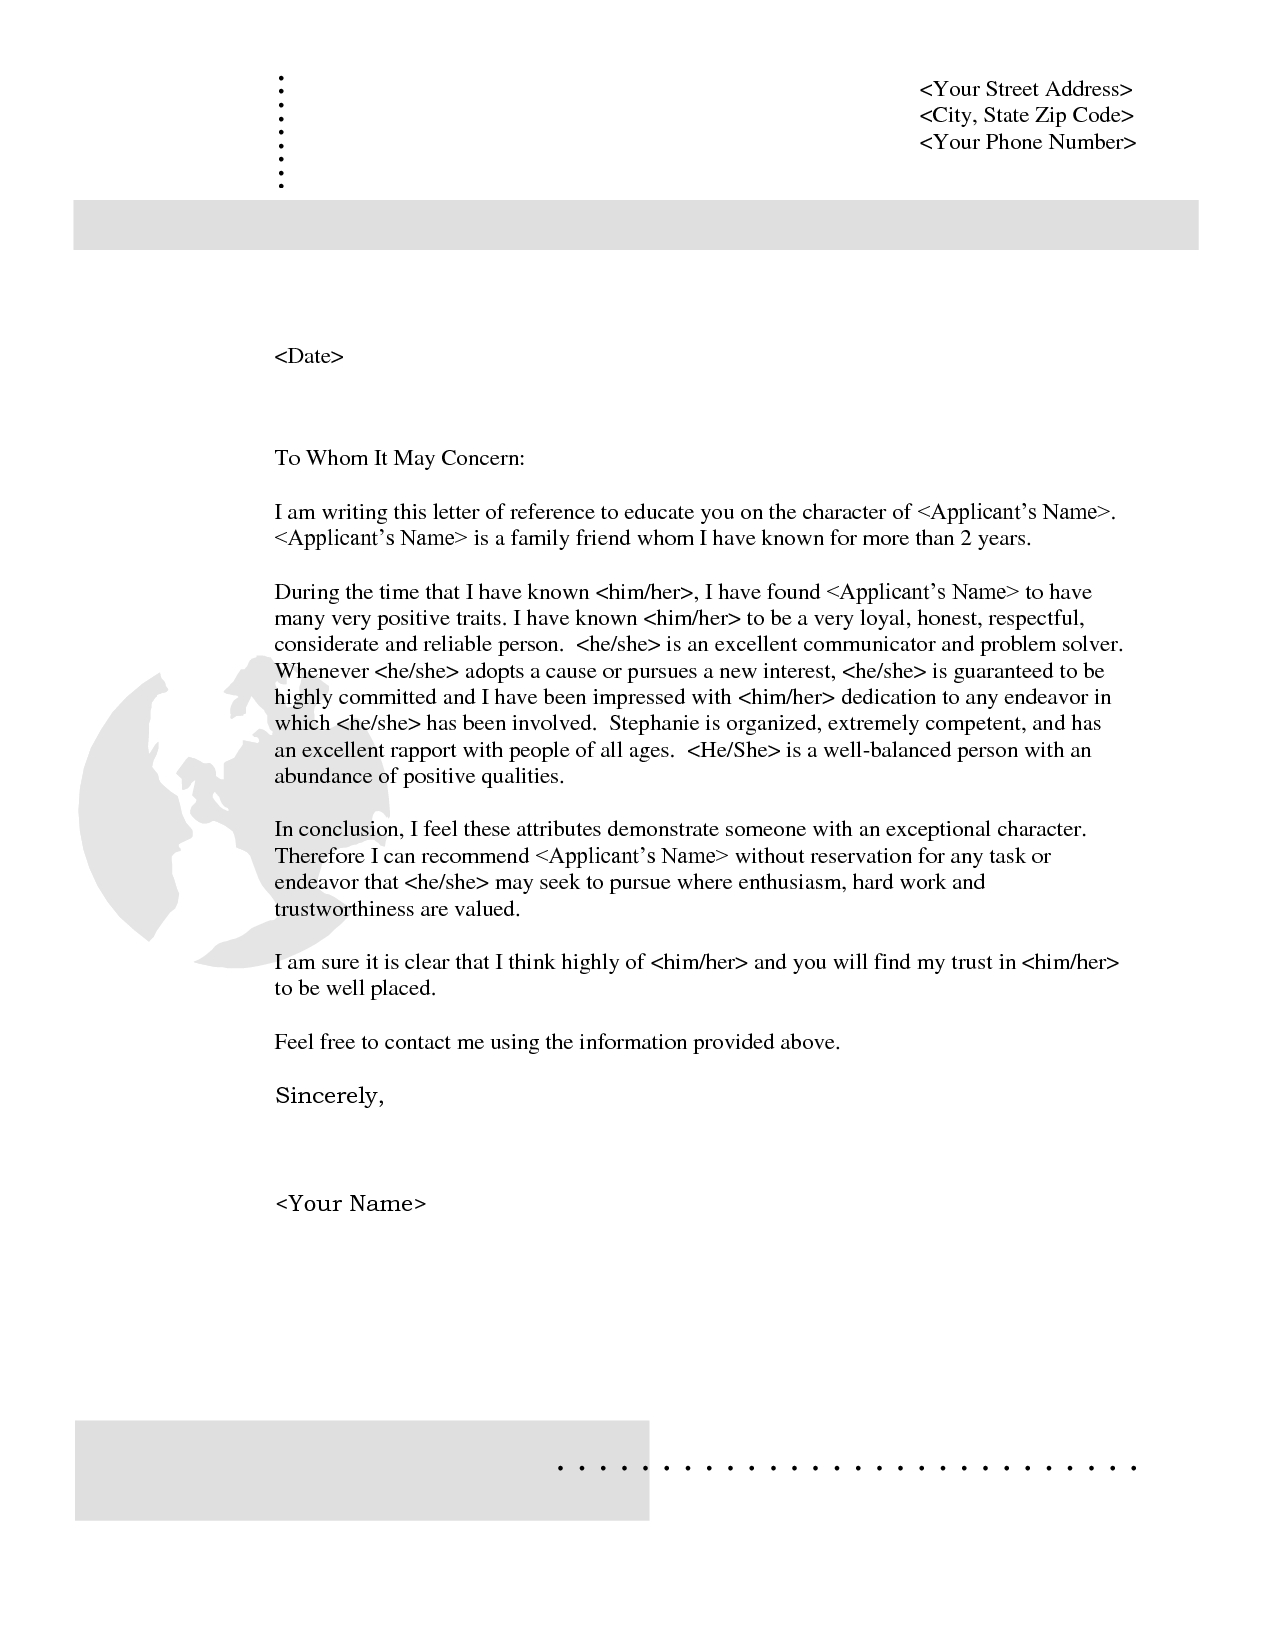 Rental Reference Letter From Friend Template - Rental Reference Letter From Friend Pdf format